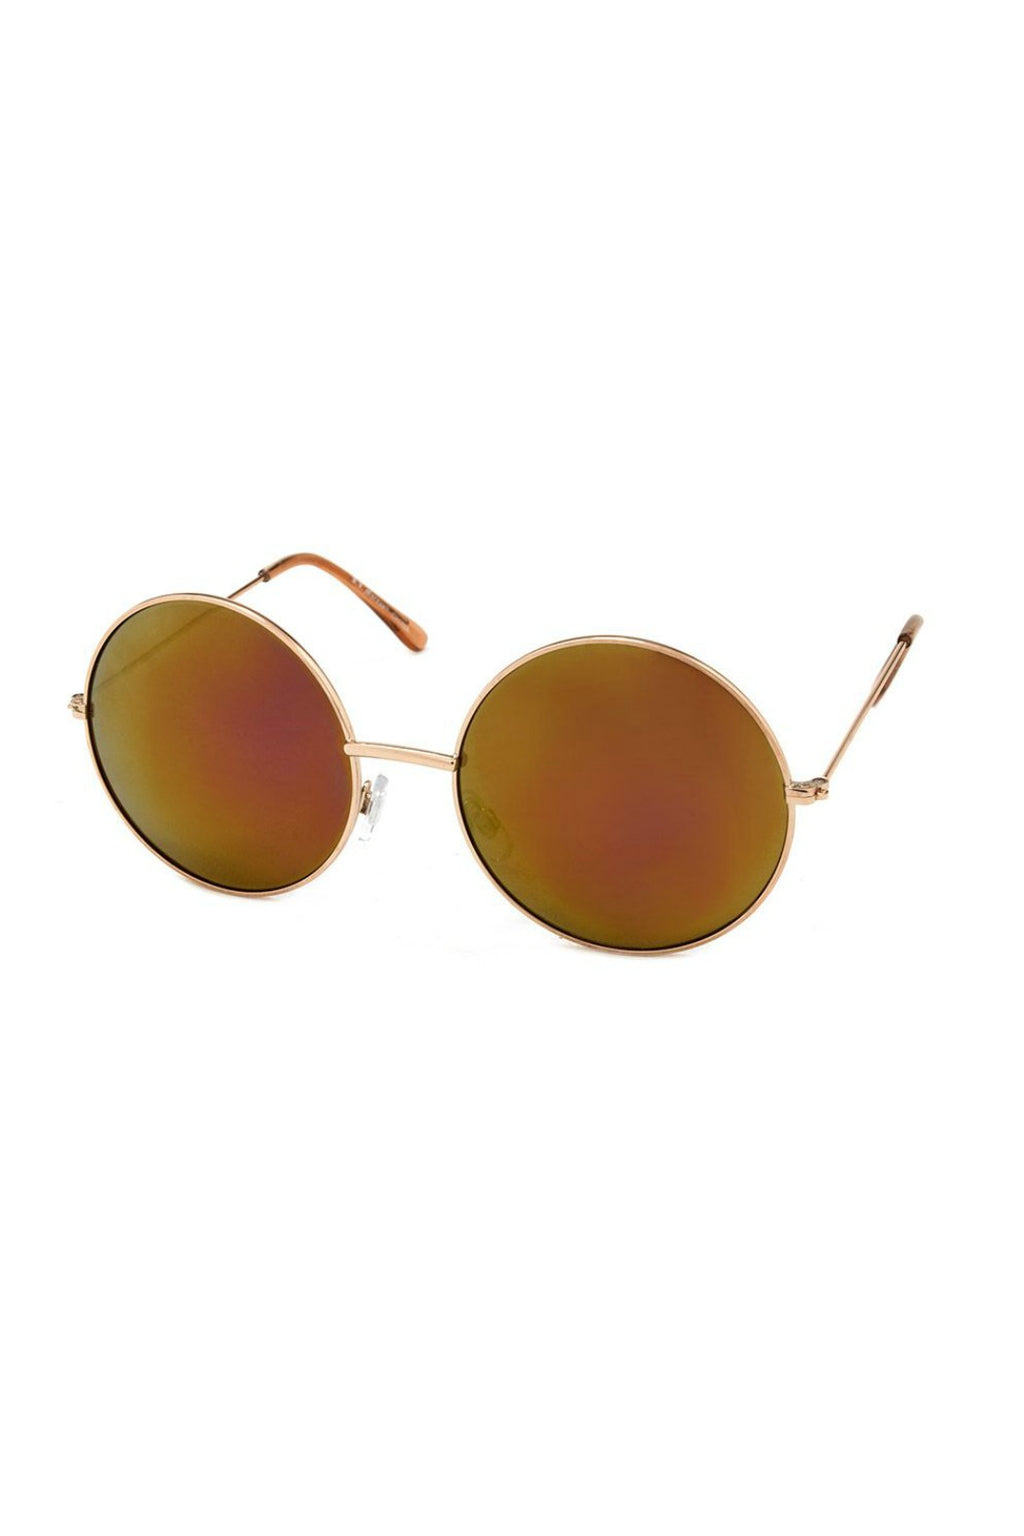 Moonies Sunnies - Gold/Yellow Mirror